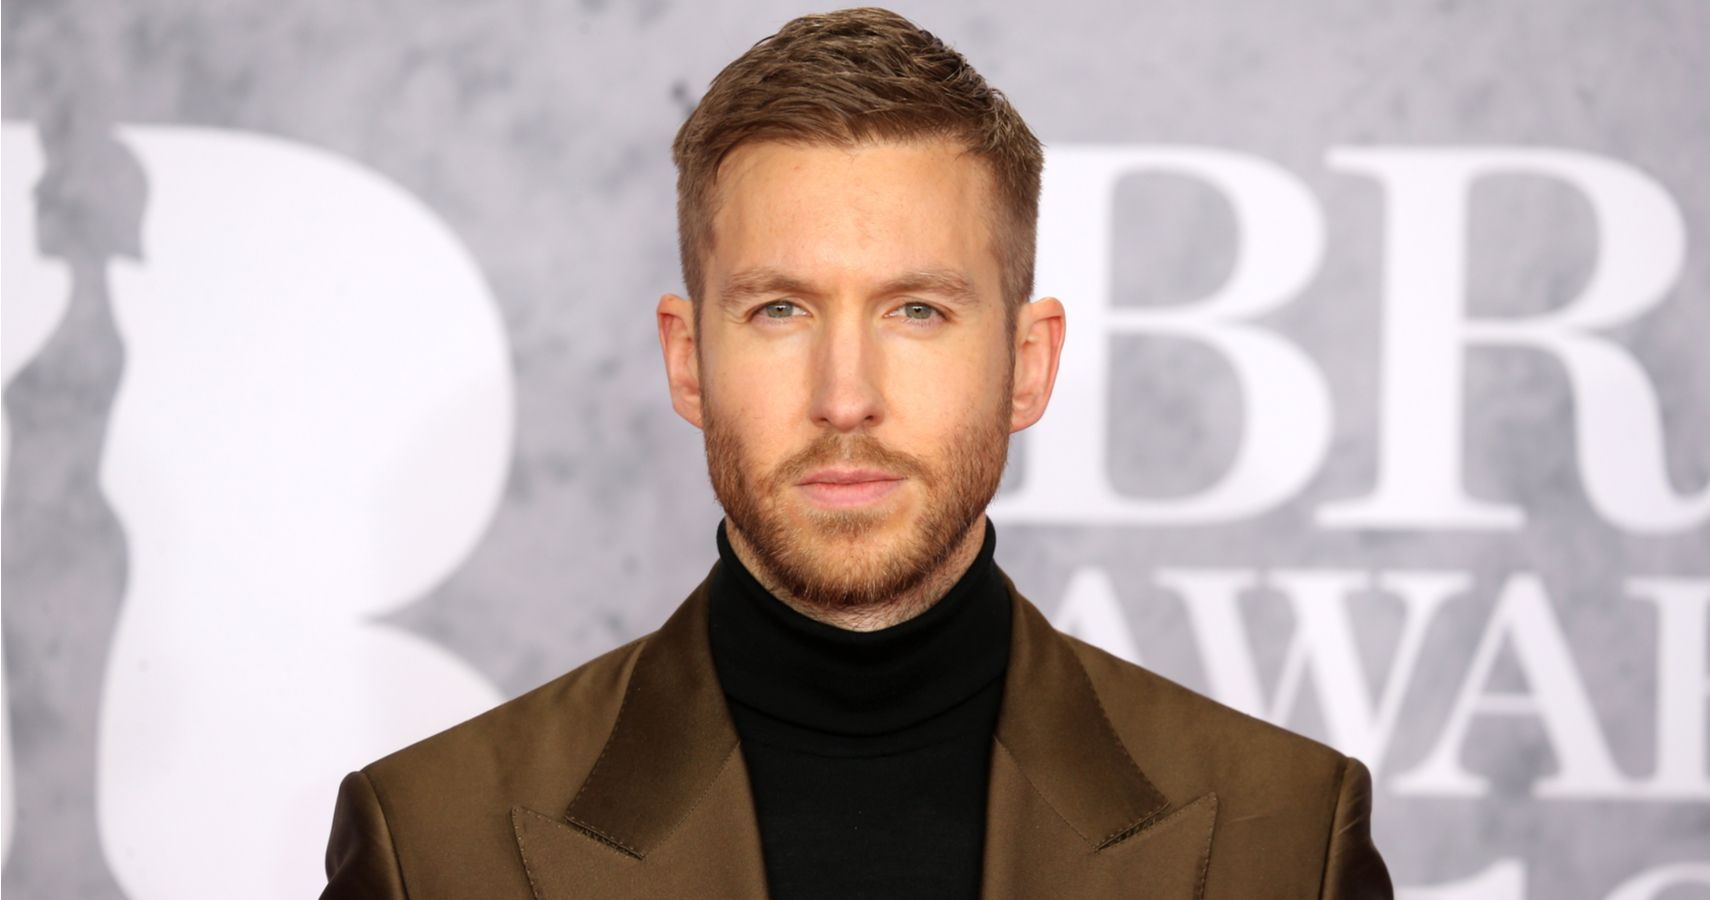 Here's How Calvin Harris Became The Richest DJ In The World